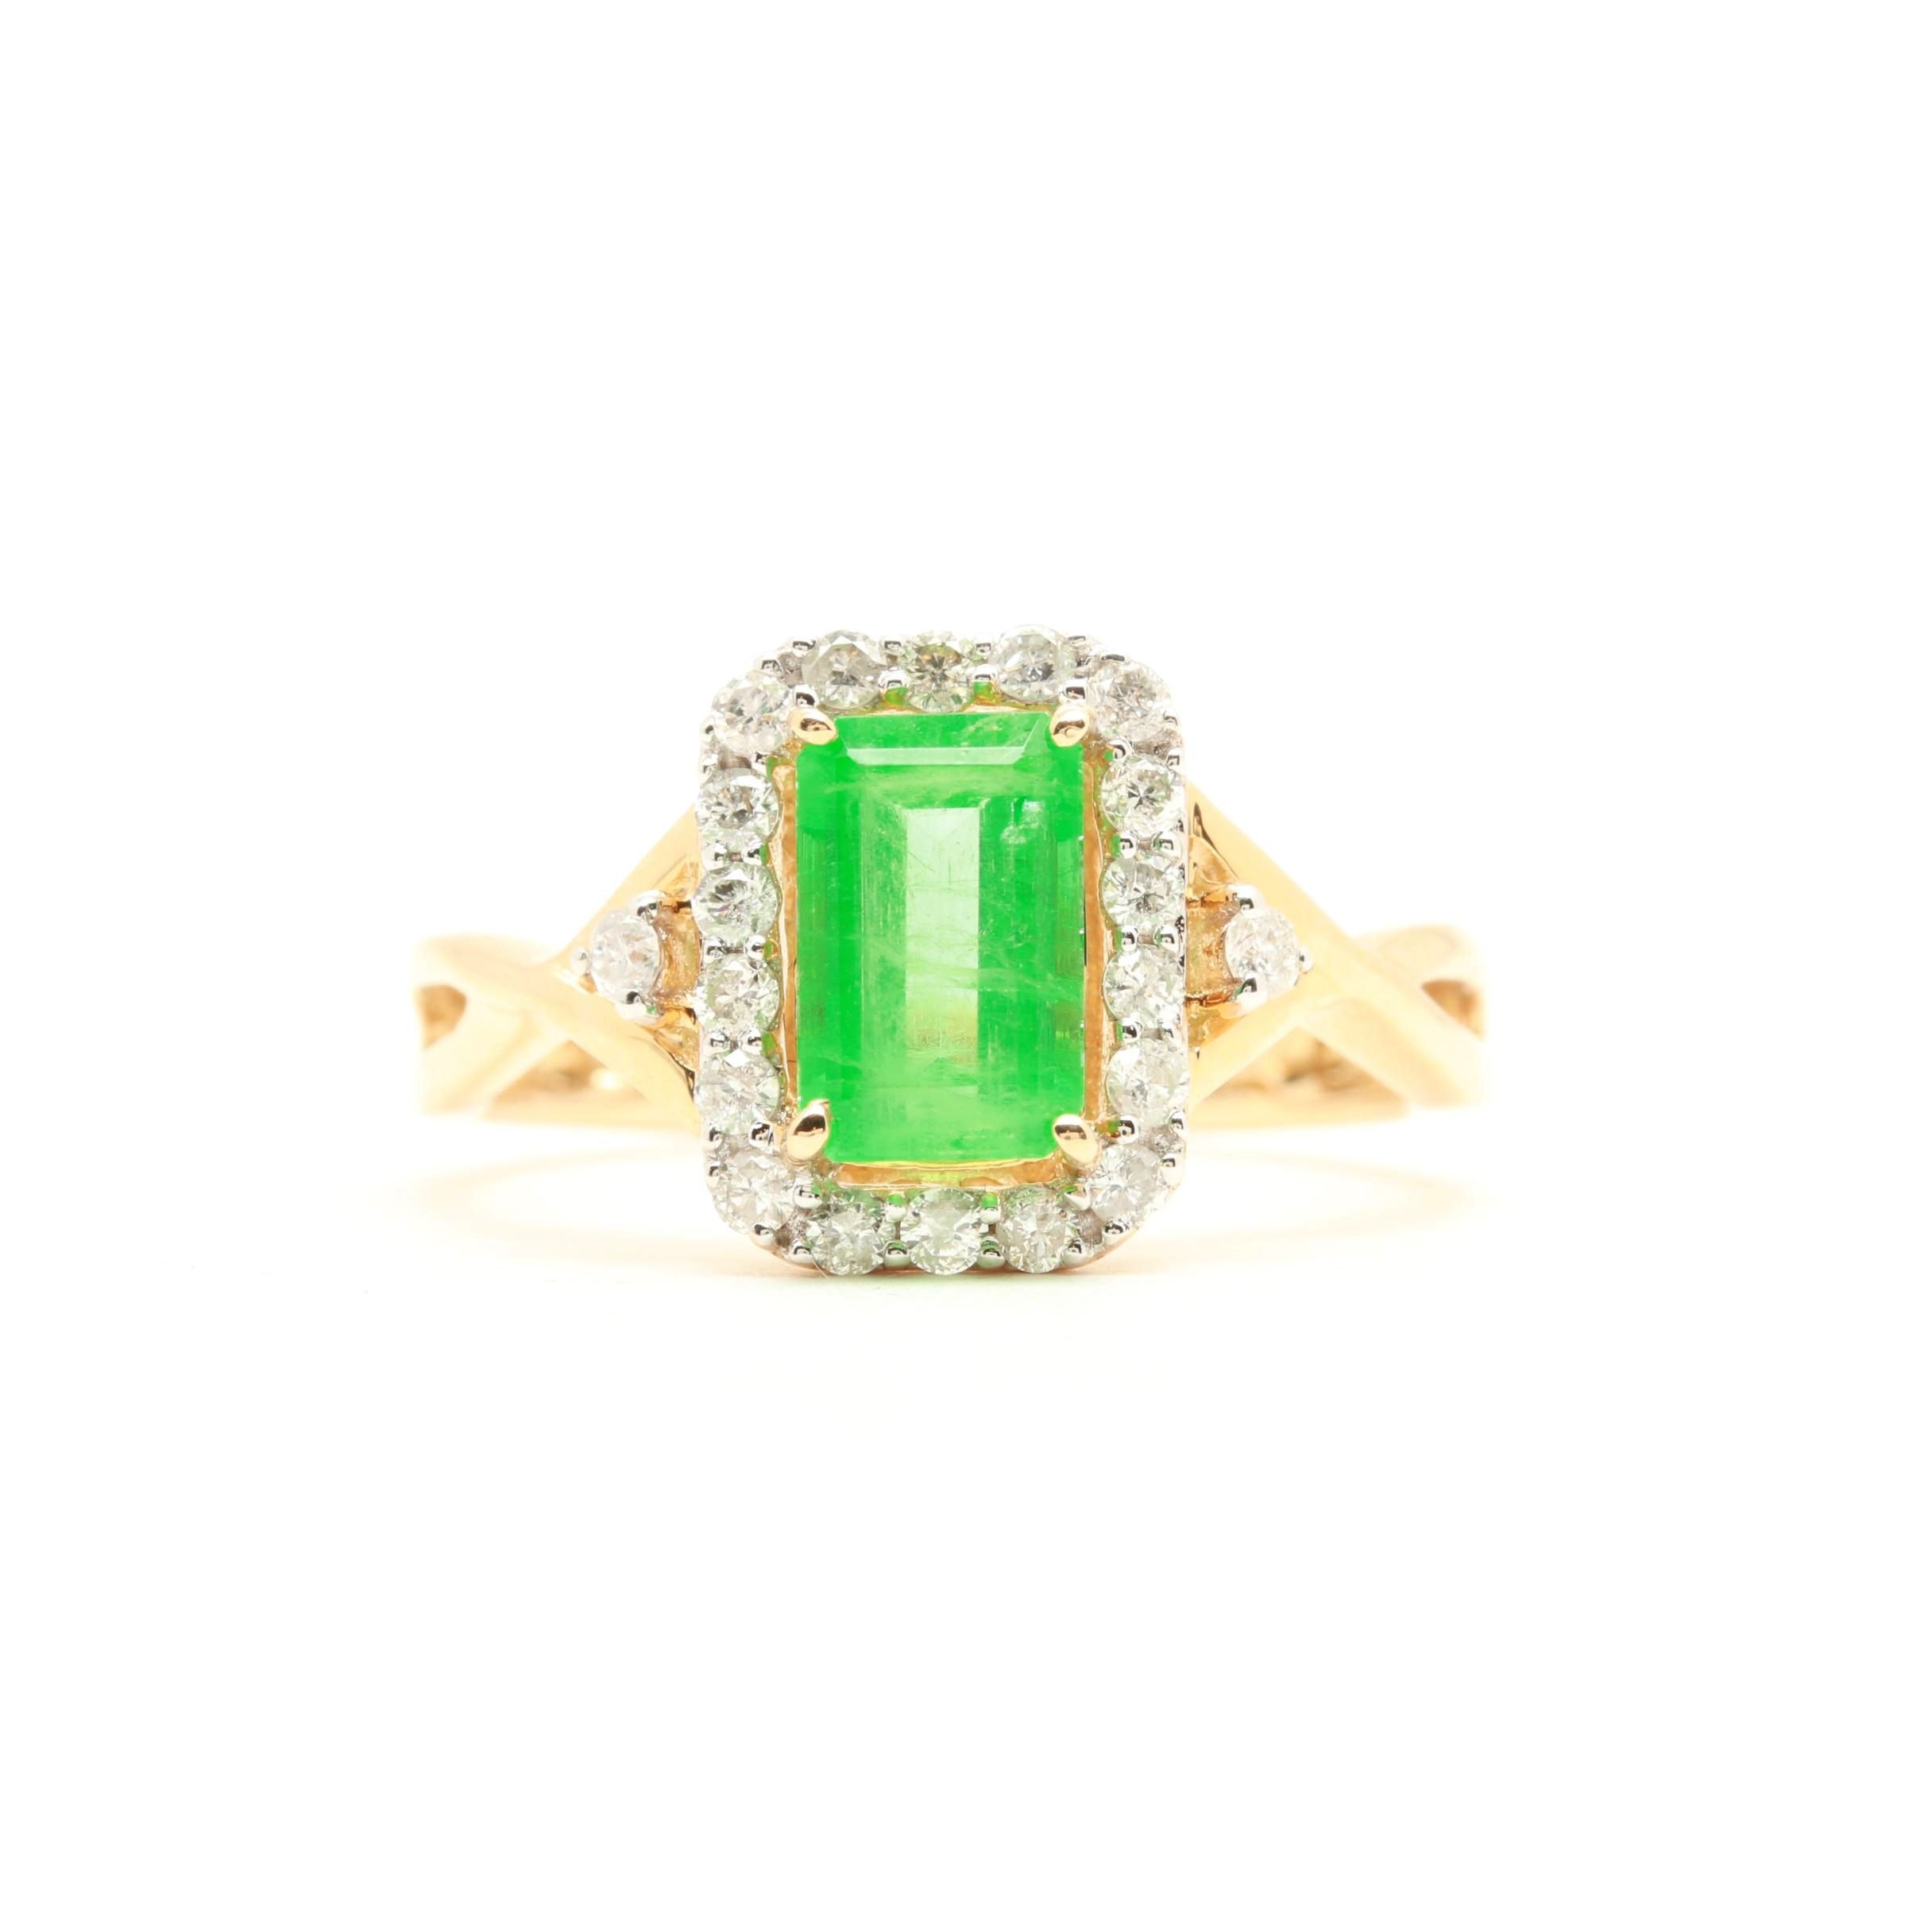 14K Yellow Gold 1.11 CT Emerald and Diamond Ring